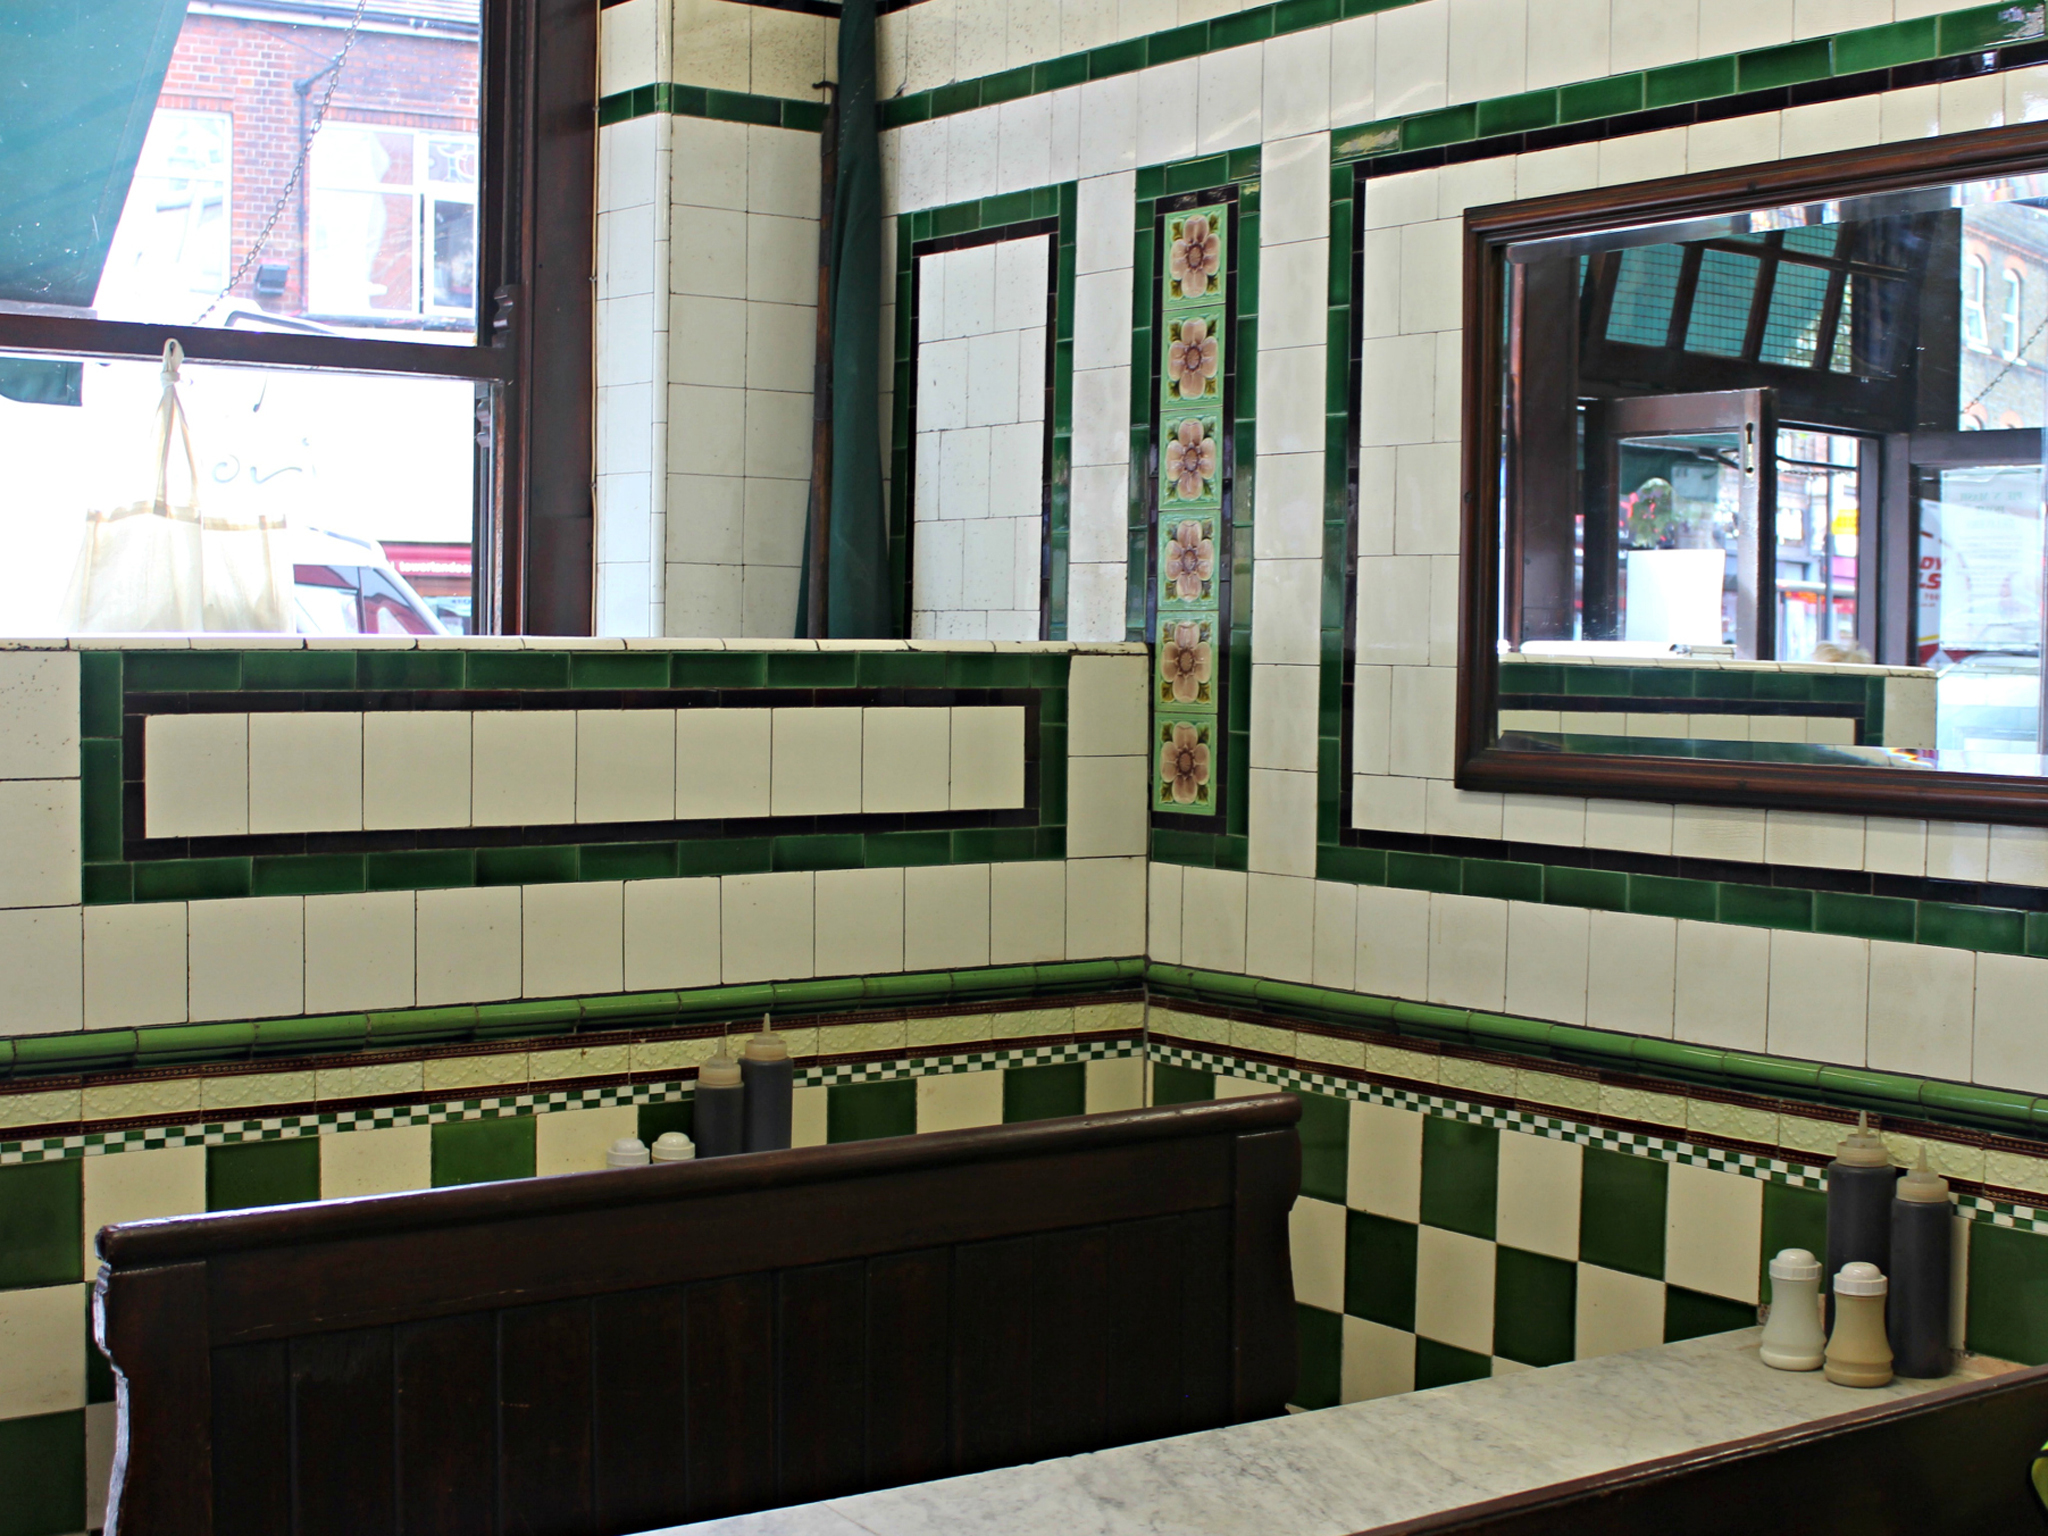 London's best pie and mash shops, M Manze Tower Bridge